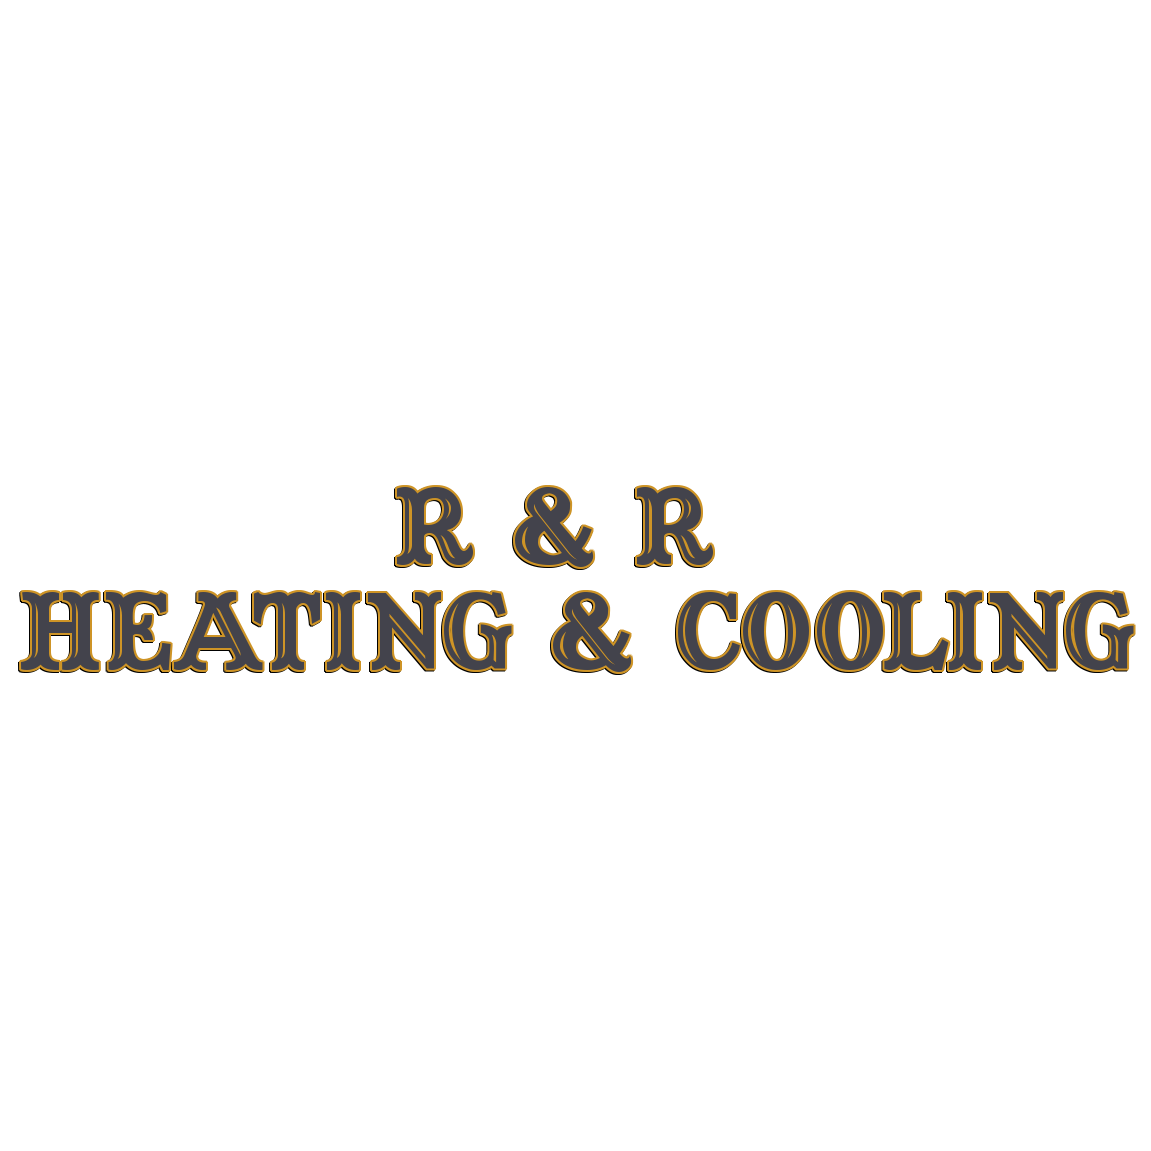 R & R Heating & Cooling